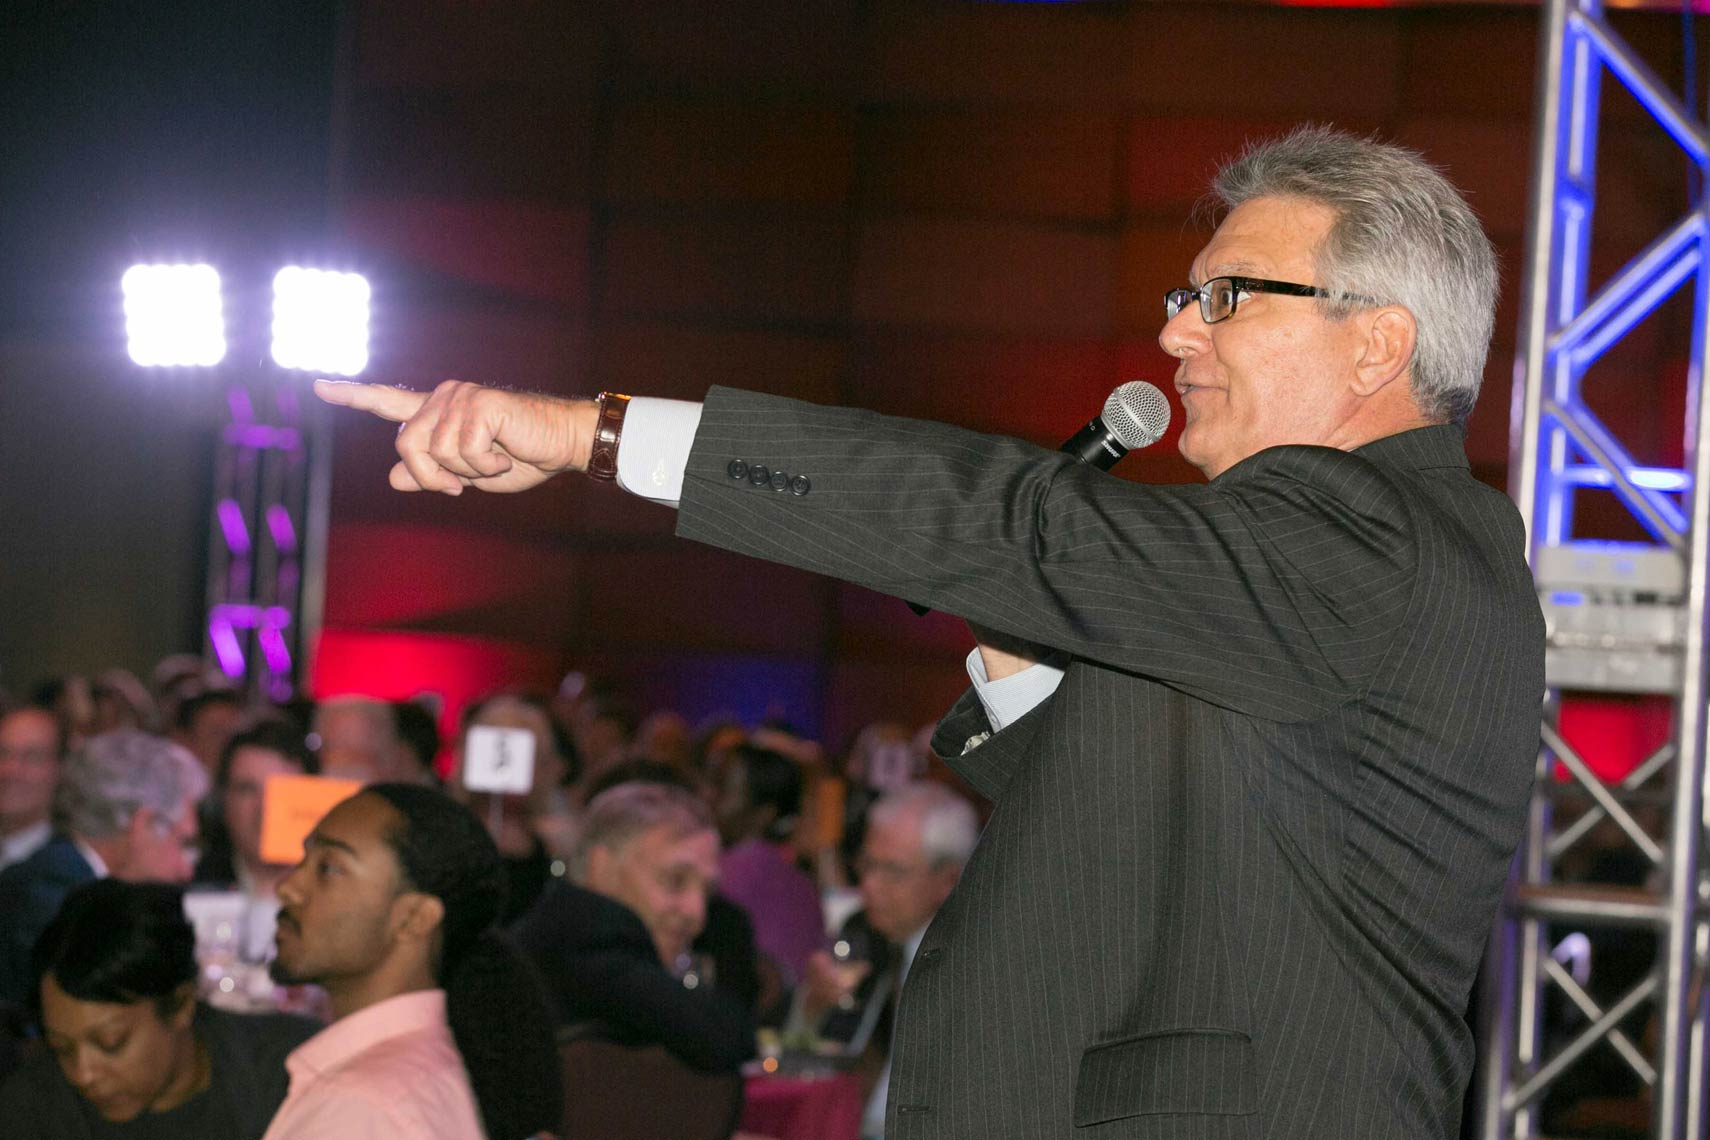 Auctioneer Points at Winner at BuidFest Boston Auction 2016